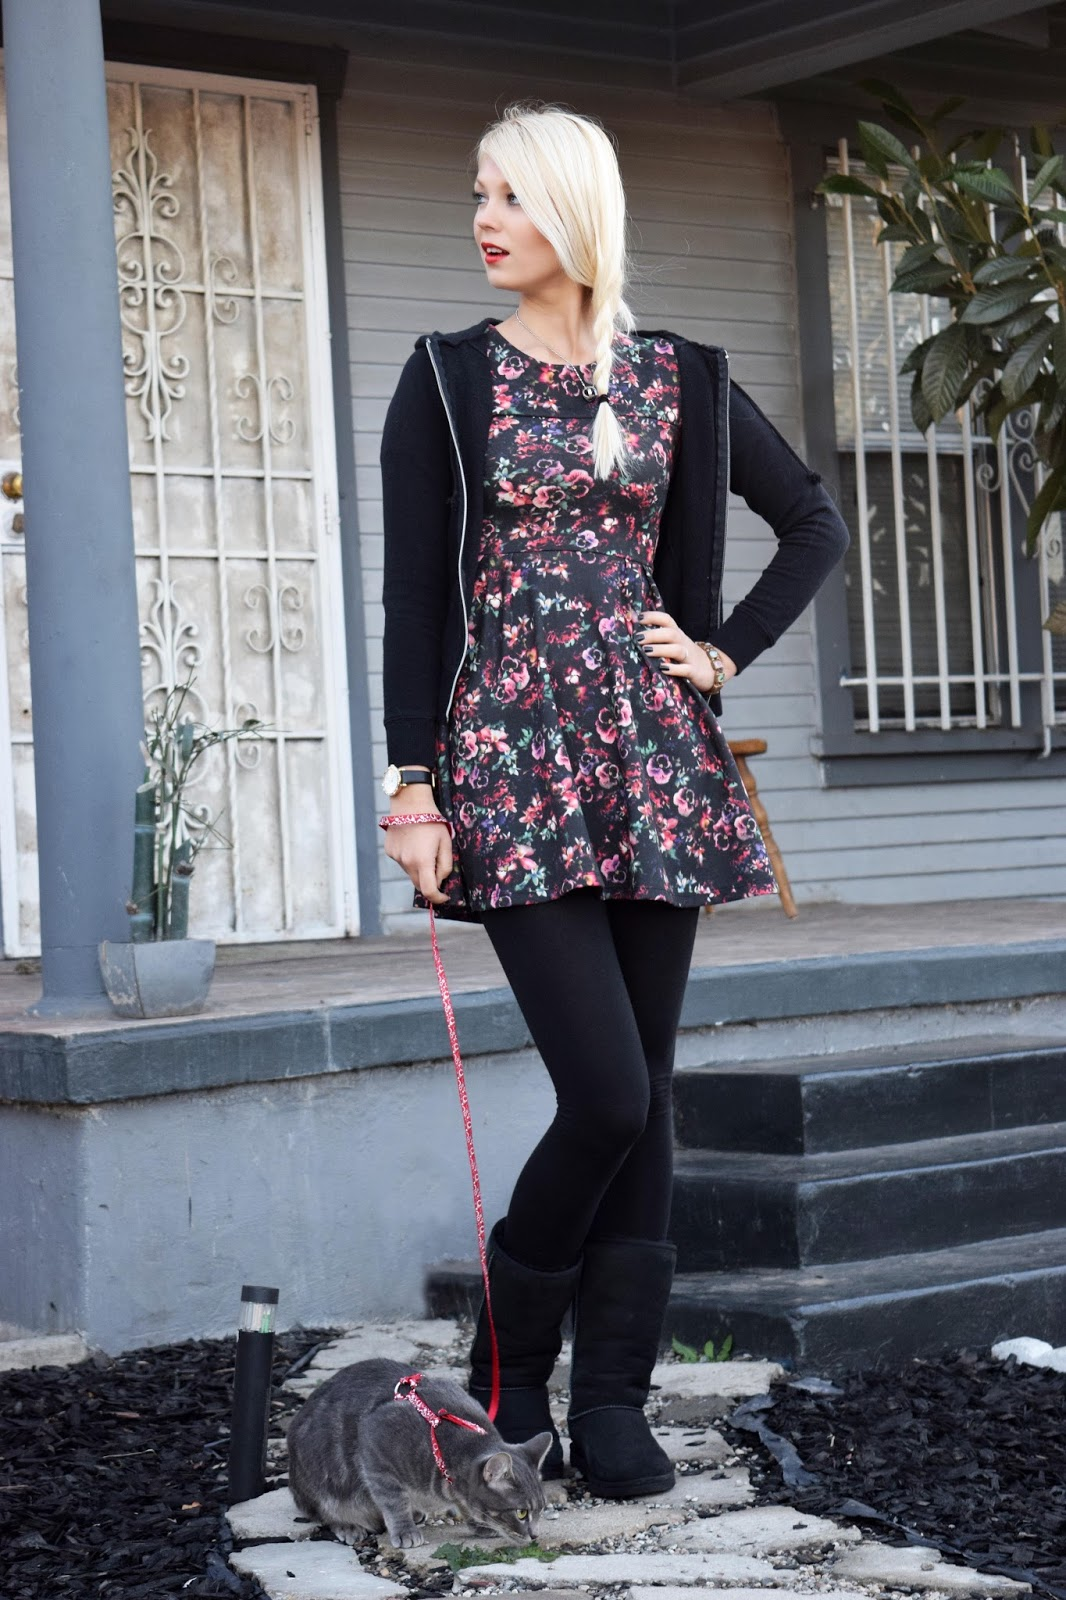 Turkey day, ootd, thanksgiving look, thanksgiving outfit, floral dress, black ugg